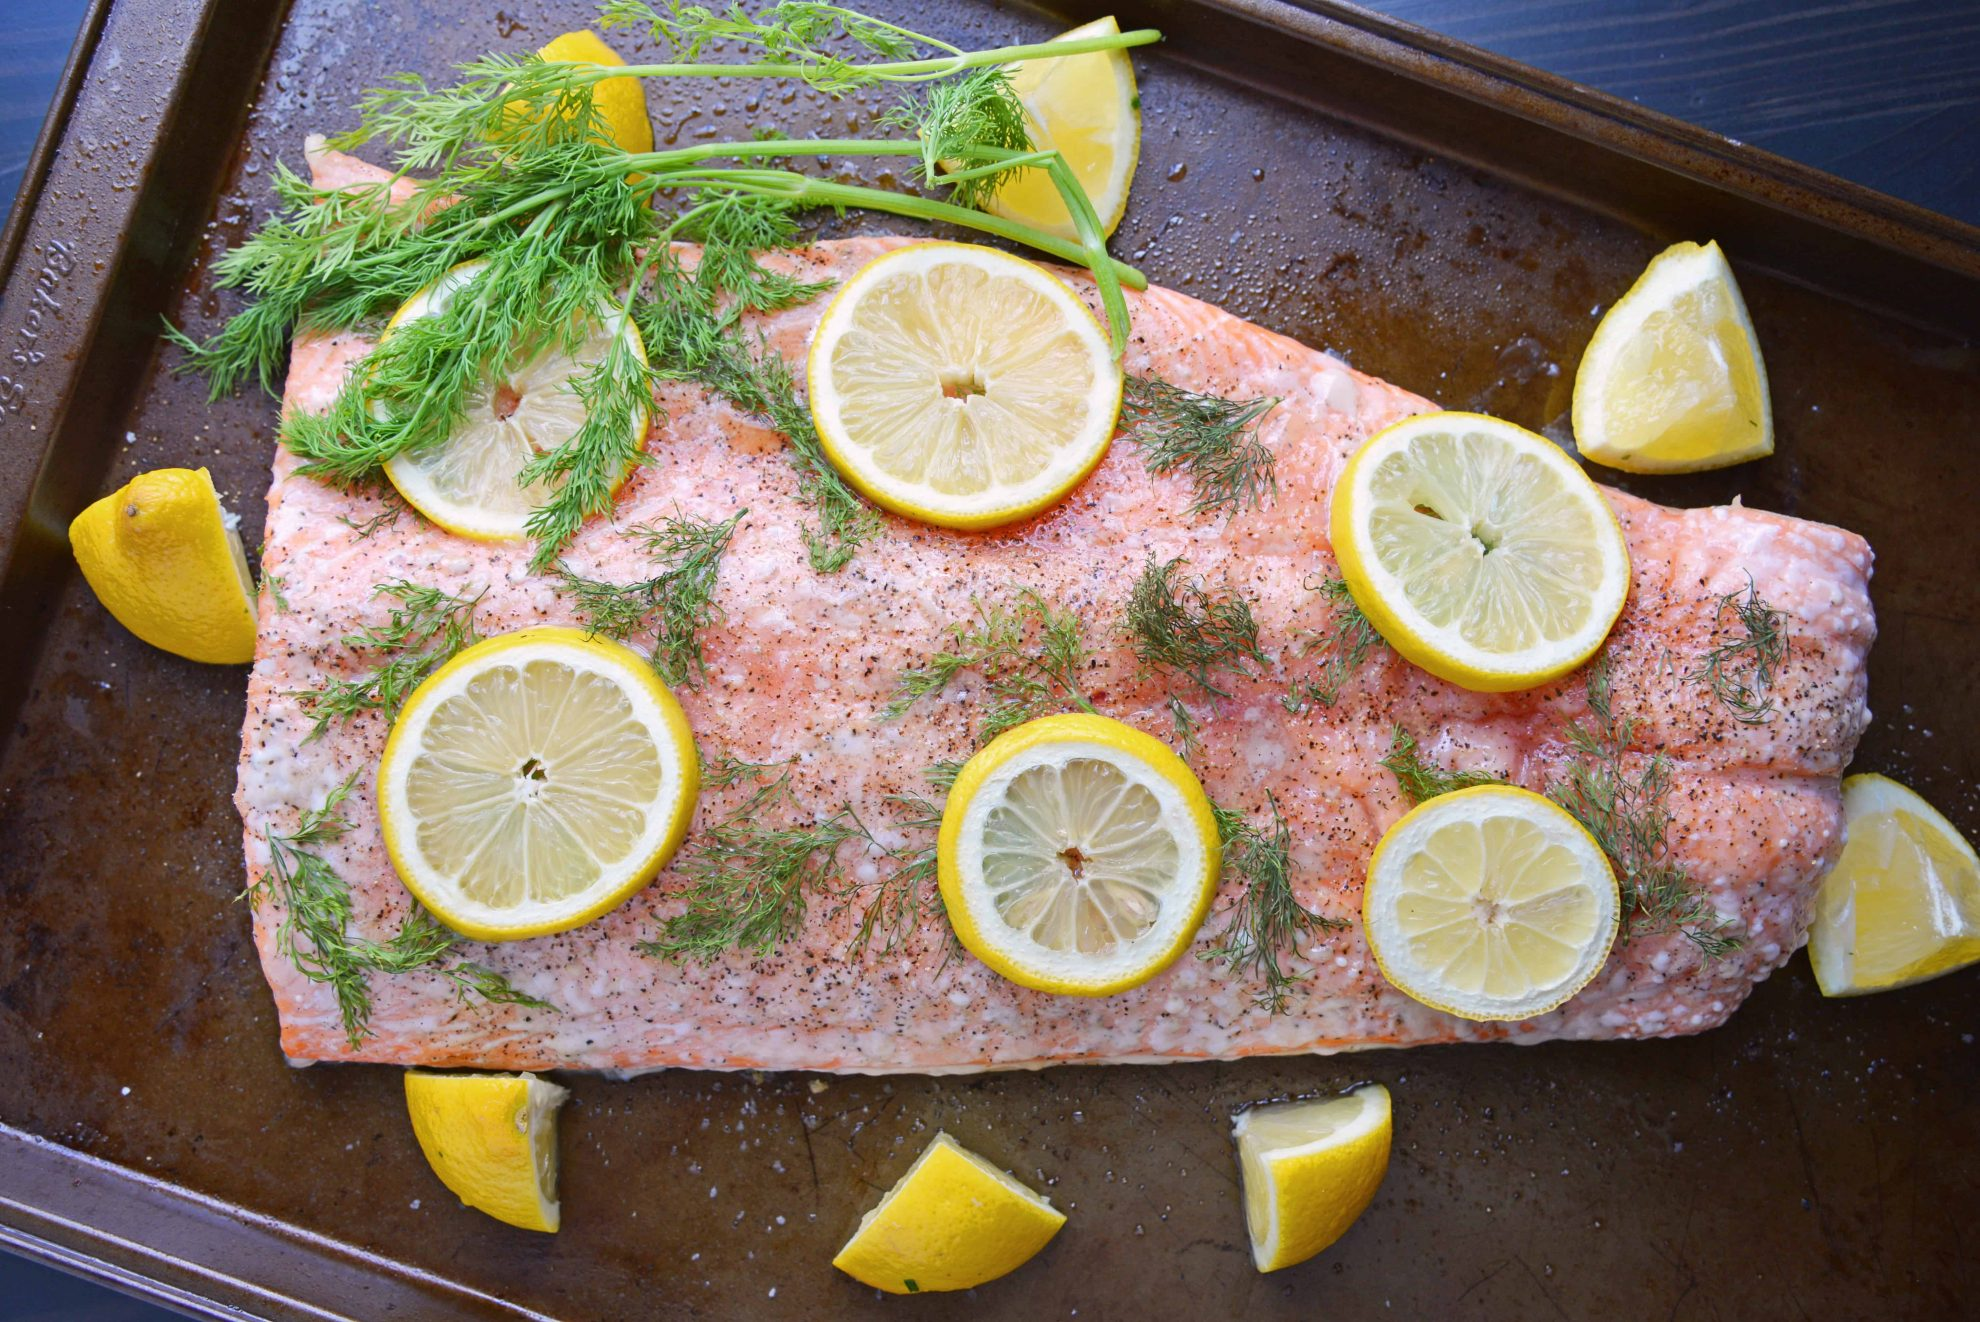 Overhead of whole salmon fillet with lemons and dill